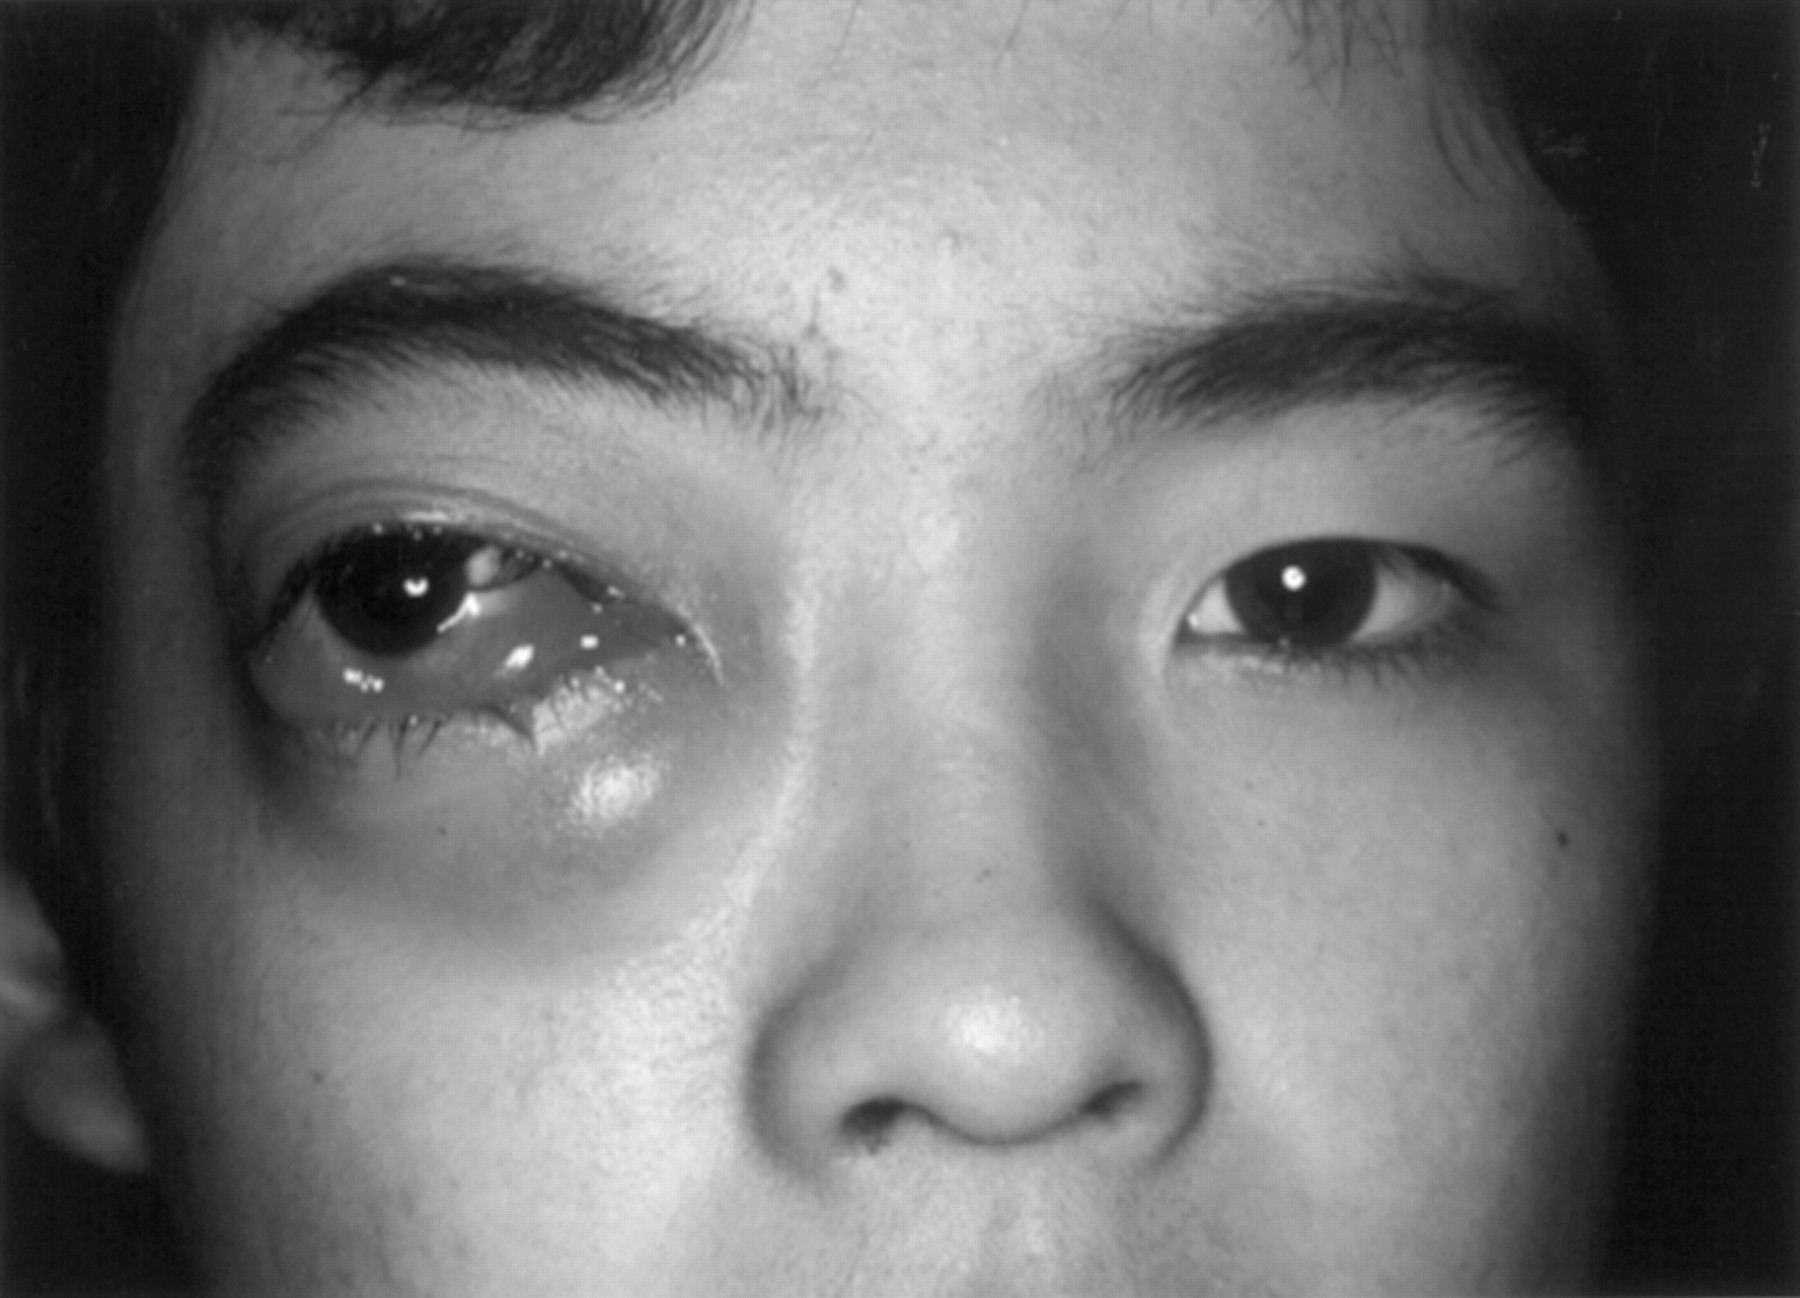 Management of orbital lymphangioma using intralesional injection of